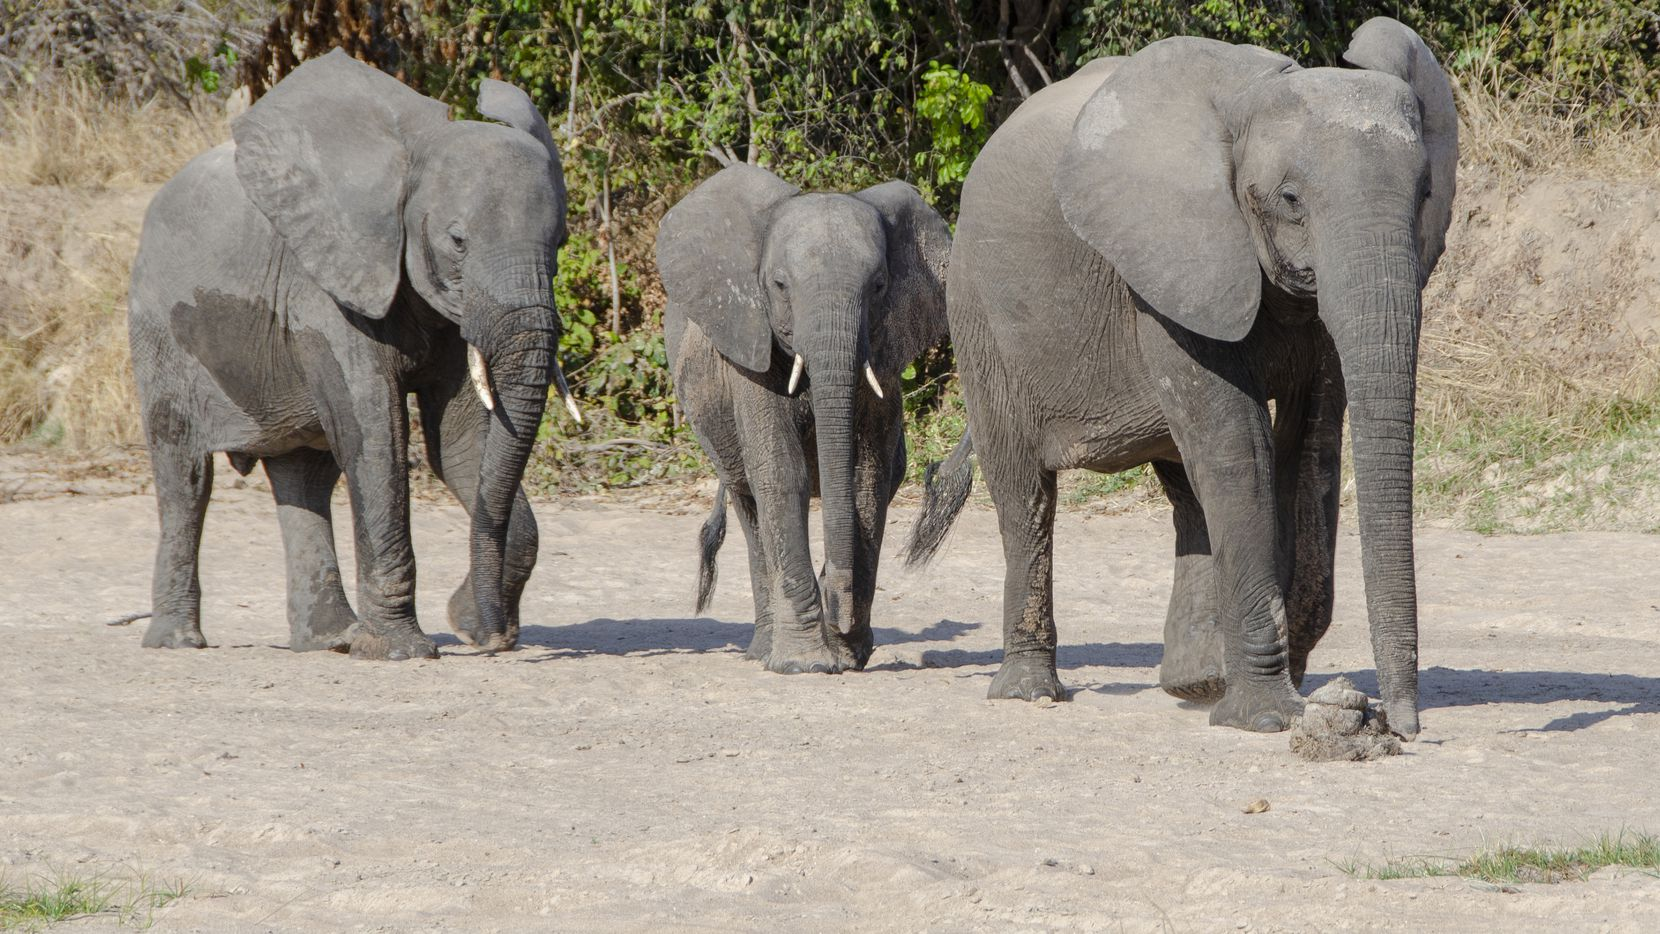 An elephant mother and her two calves look for water in a dry riverbed in Zambia's South Luangwa National Park.